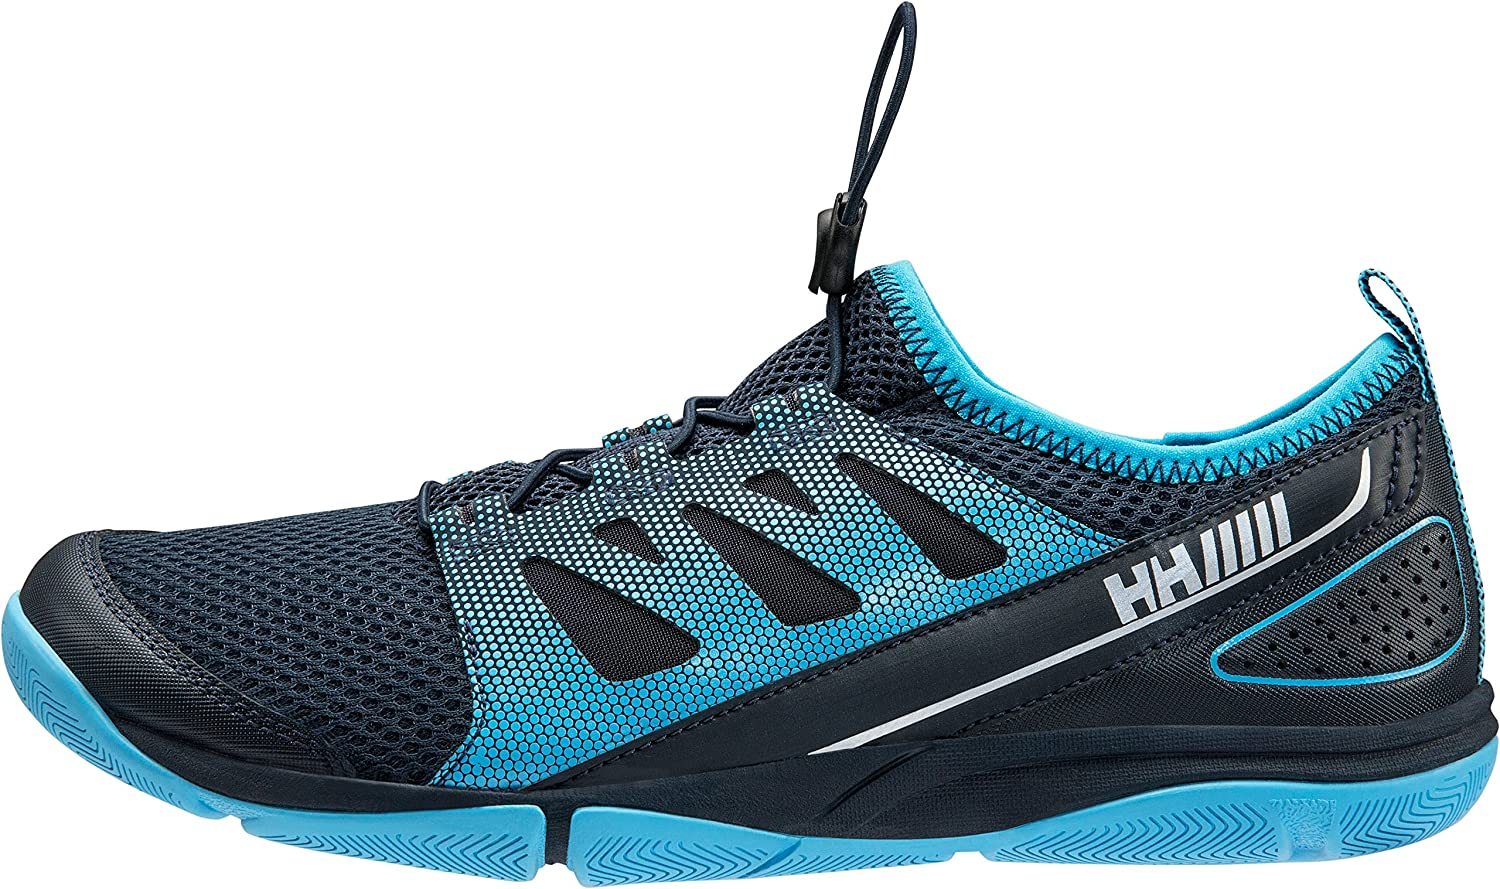 Helly Hansen Women's W Aquapace 2 Fashion Sneaker B073RPJXPJ EU 38/US 7|Navy / Aqua Blue / Black